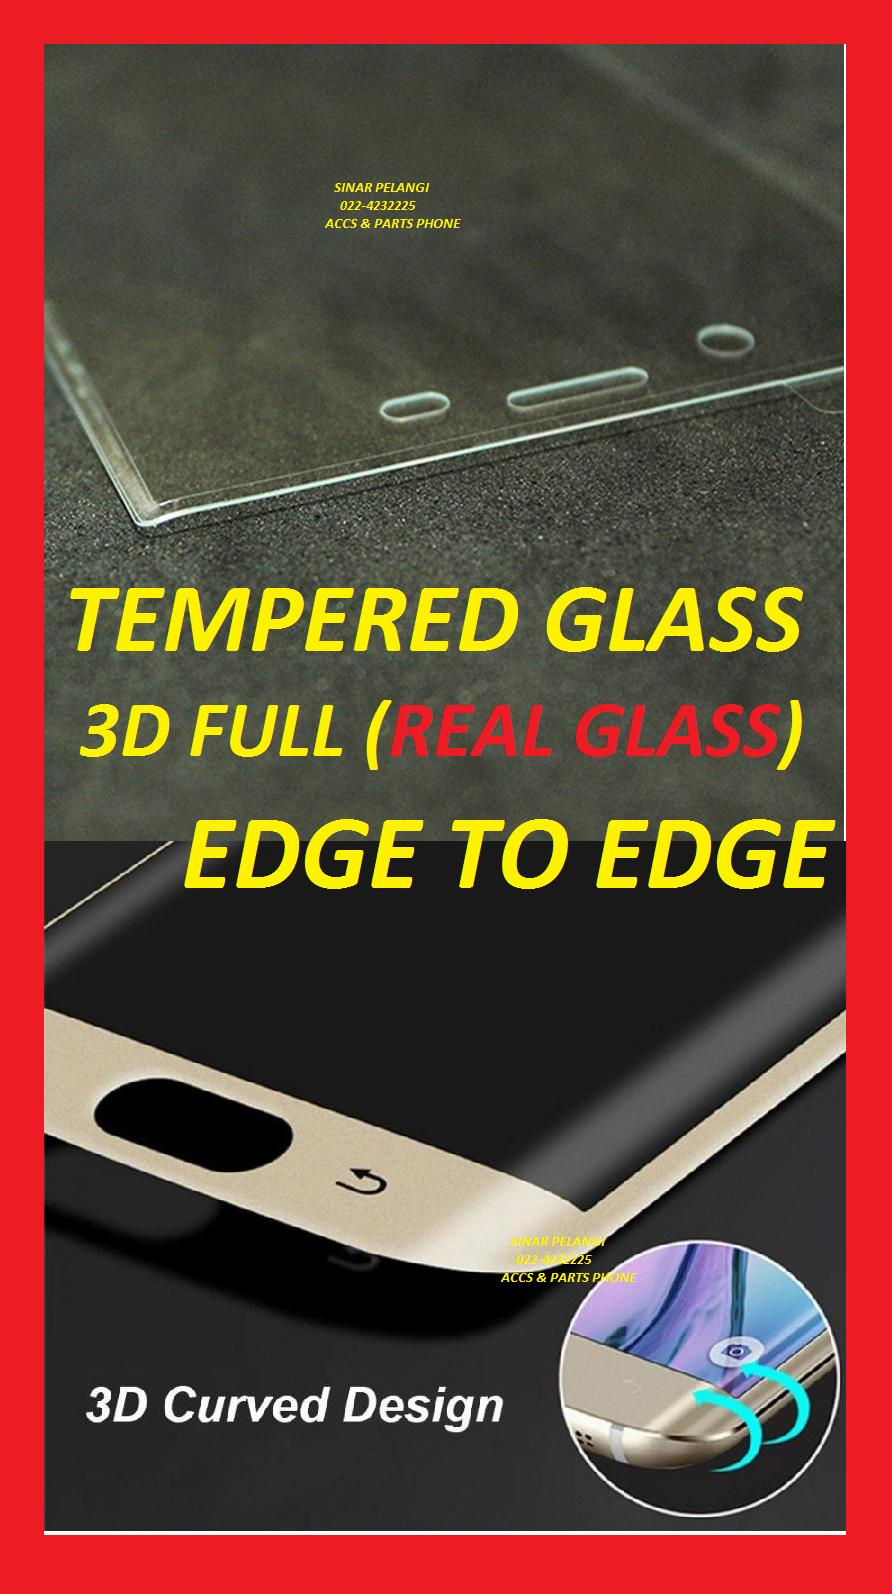 SAMSUNG S6 EDGE PLUS G928 BLACK 3D FULL COVER CURVED CURVE 2.5D ROUND EDGE TO EDGE LENGKUNG CEKUNG ANTI GORES TEMPERED TEMPER GLASS KACA HIFI 906066